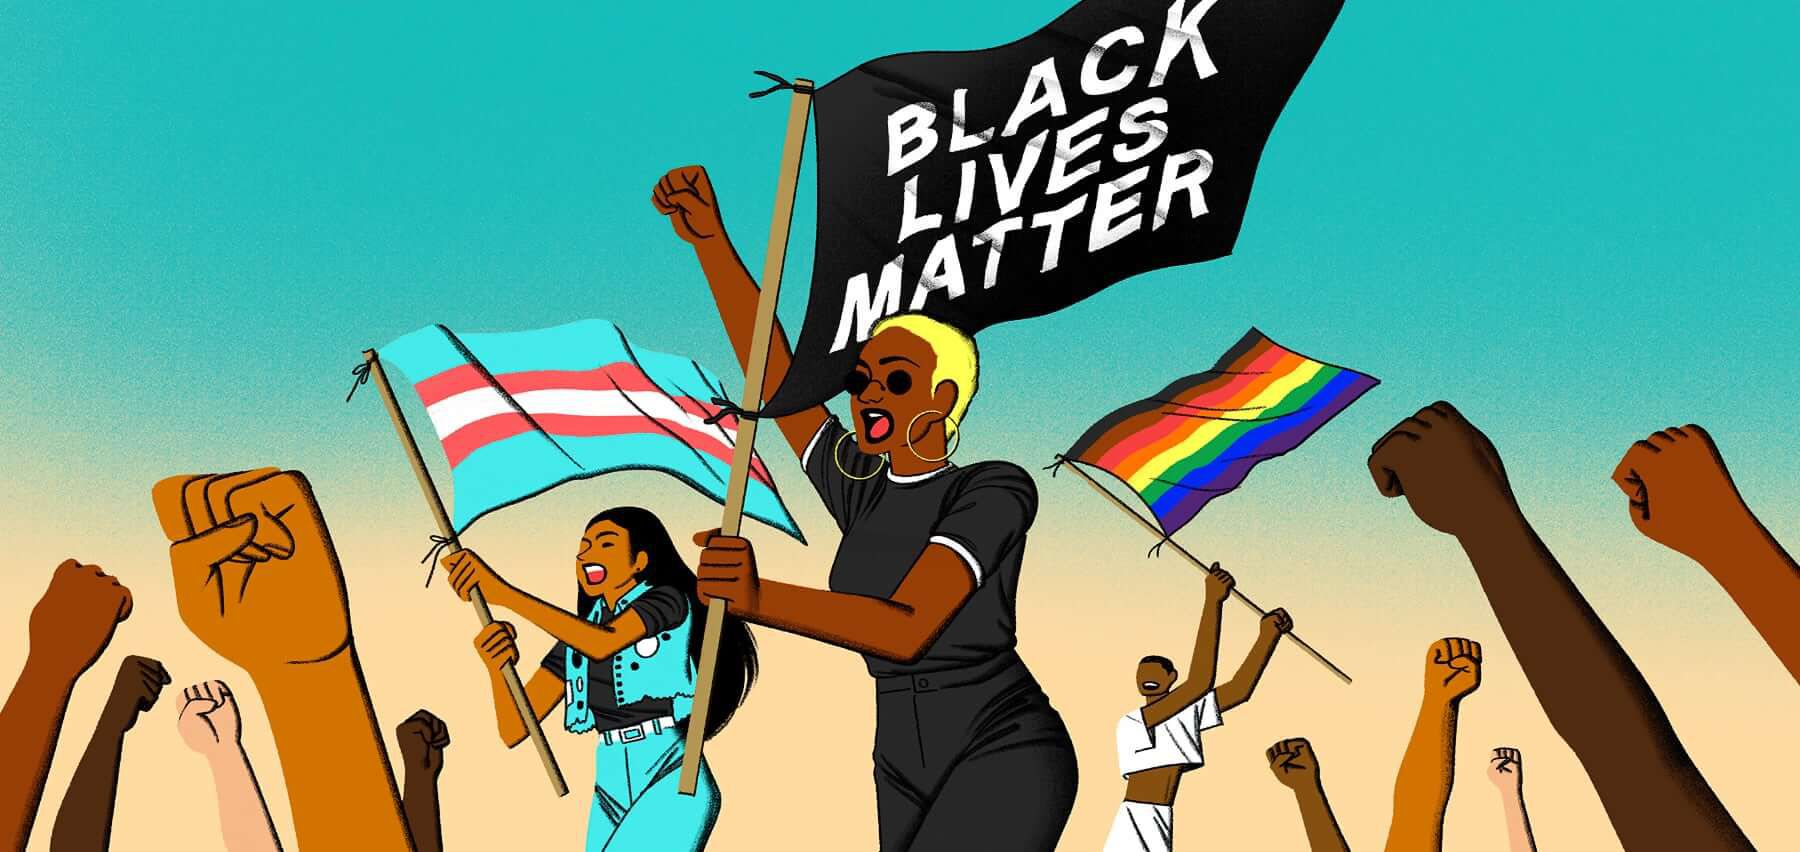 We run on inclusion: On Pride, allyship, and Black Lives Matter